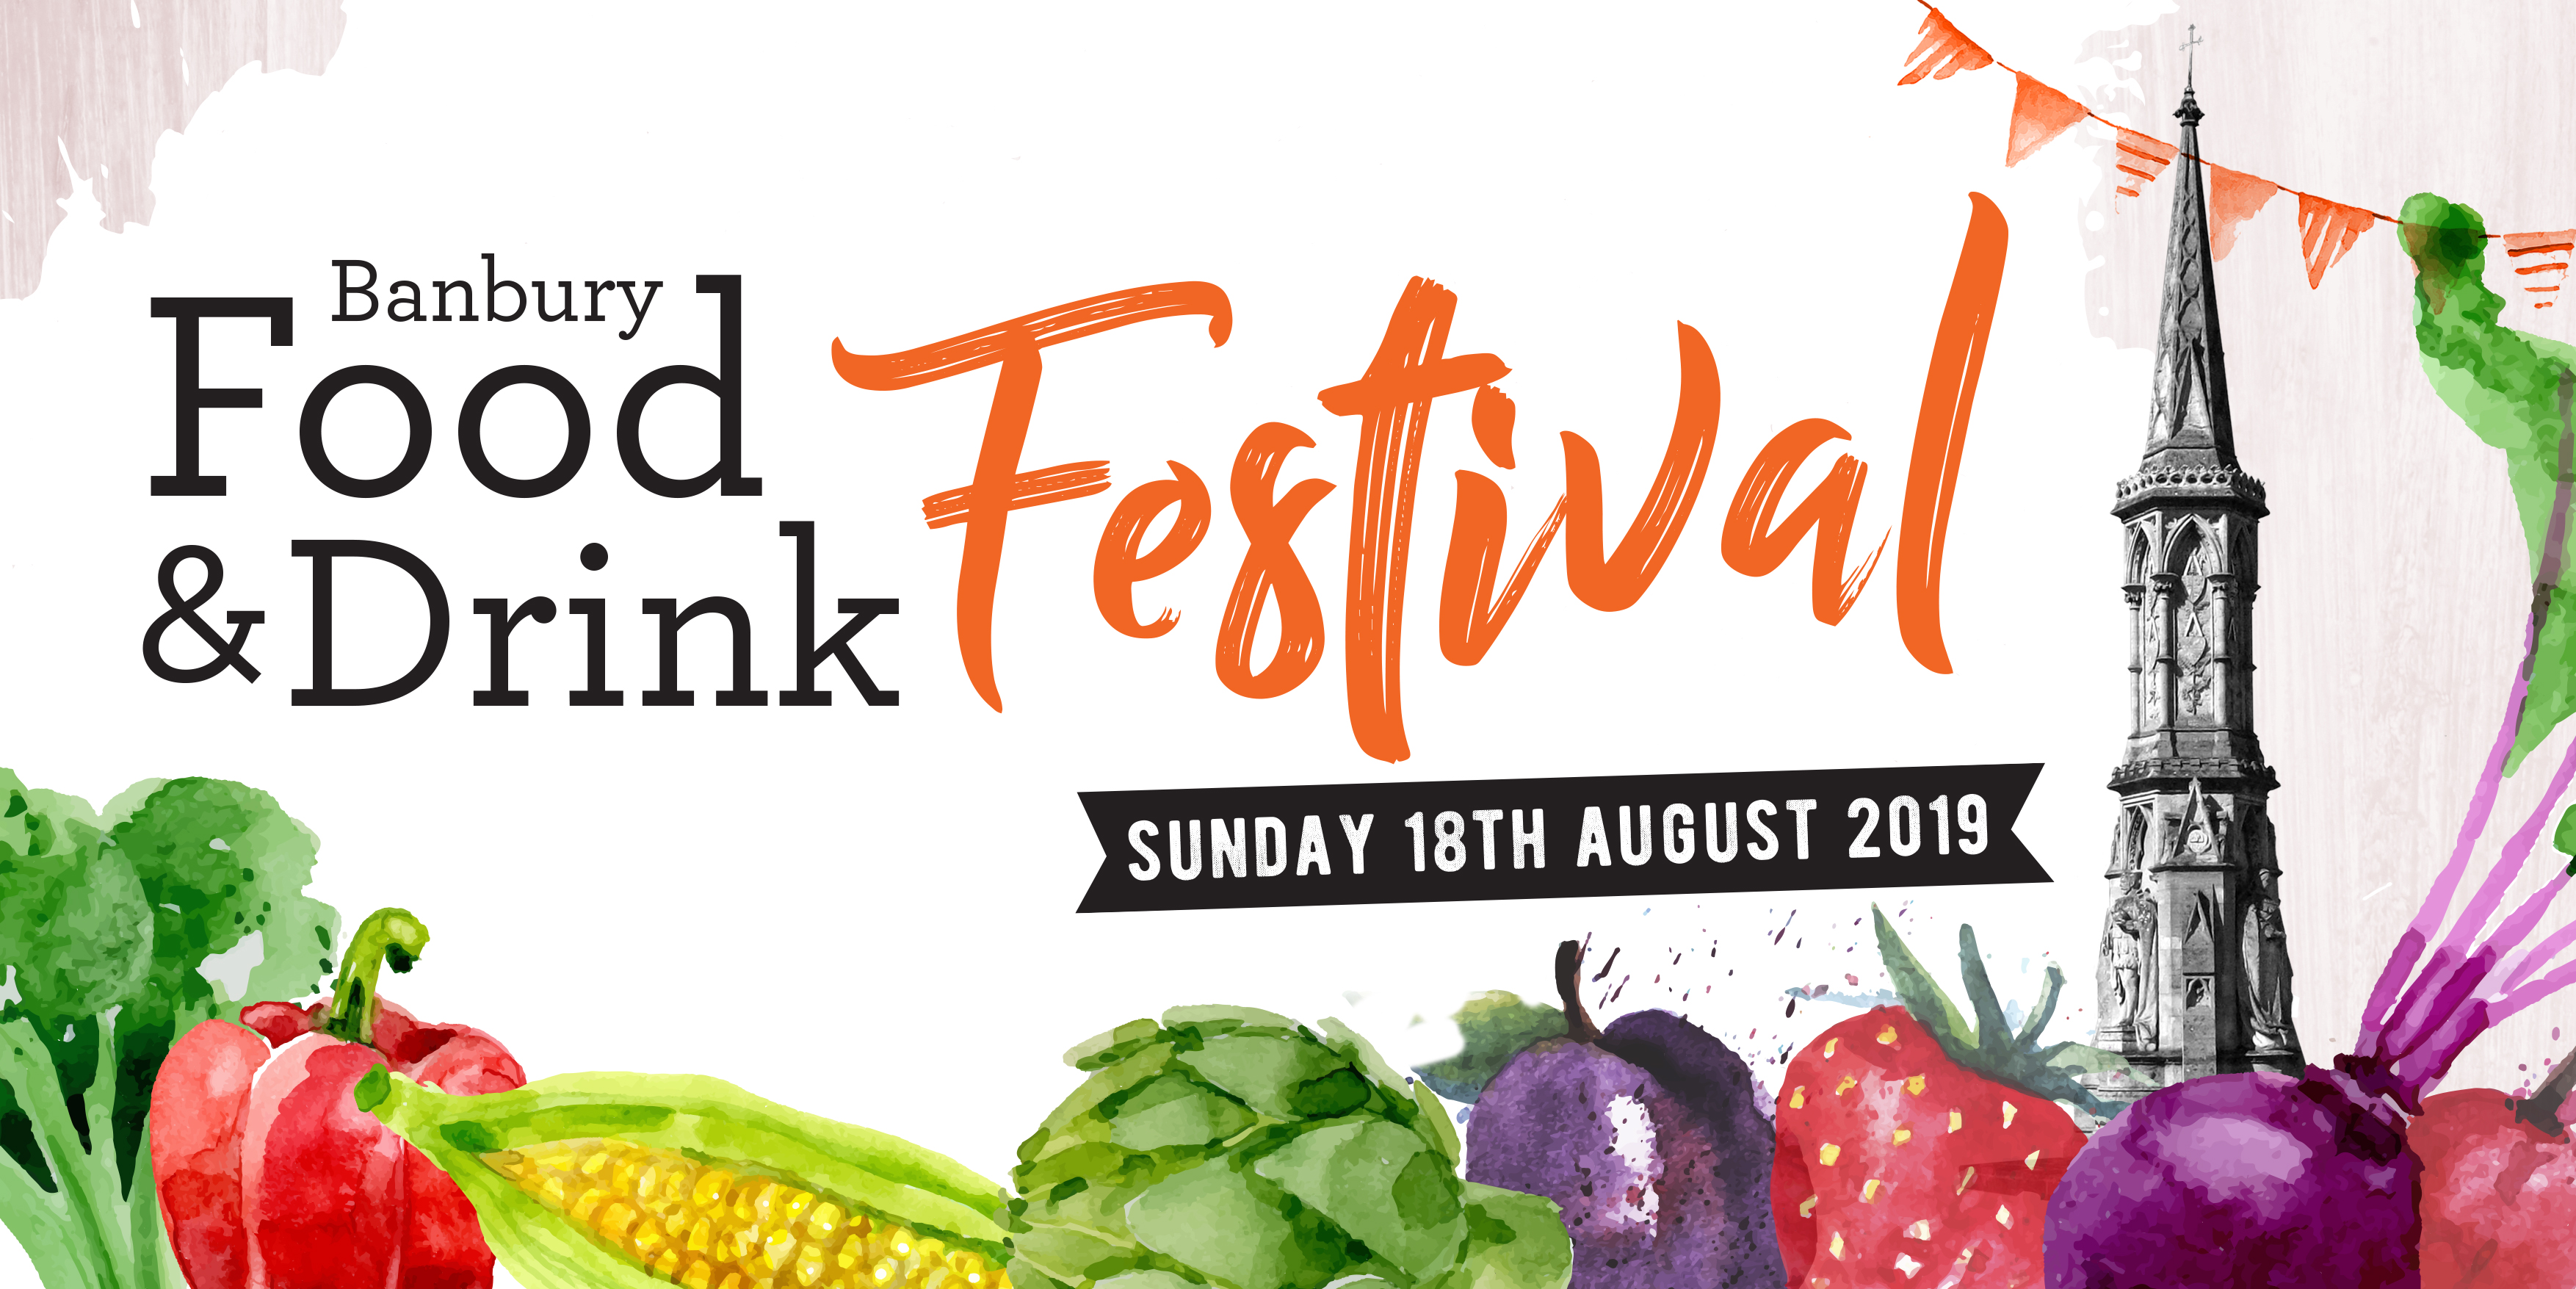 Banbury Food & Drink Festival Branding